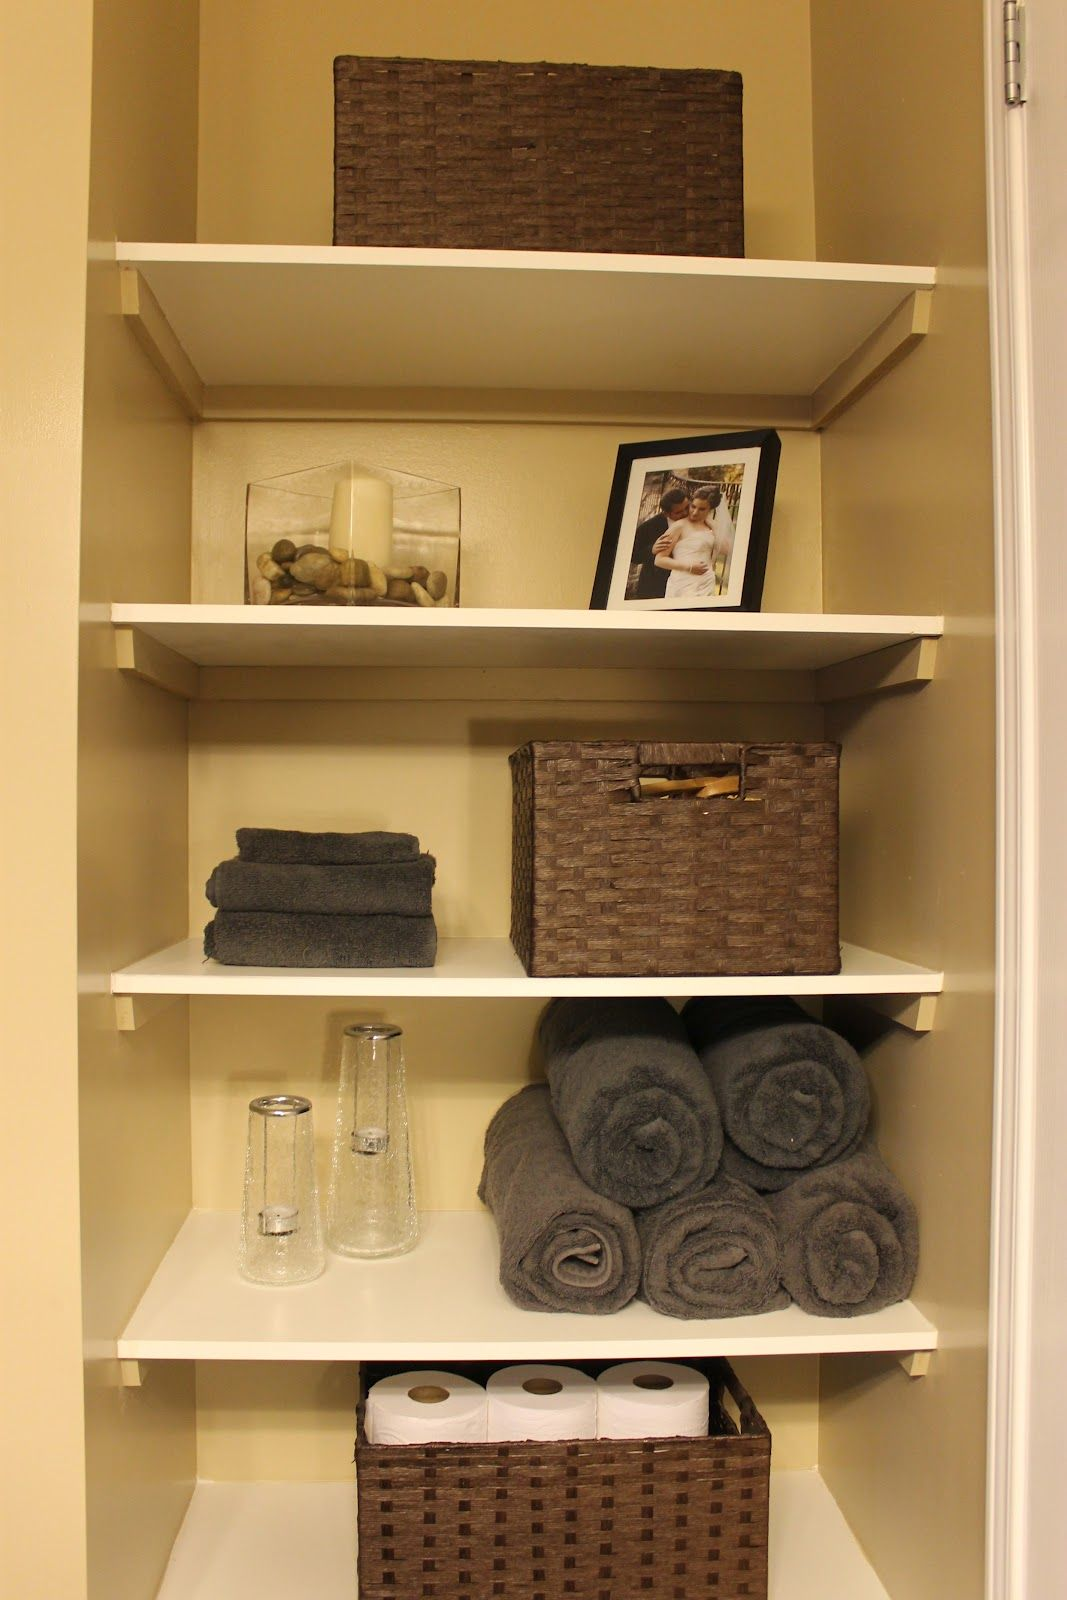 Genial DIY: Organizing Open Shelving In A Bathroom